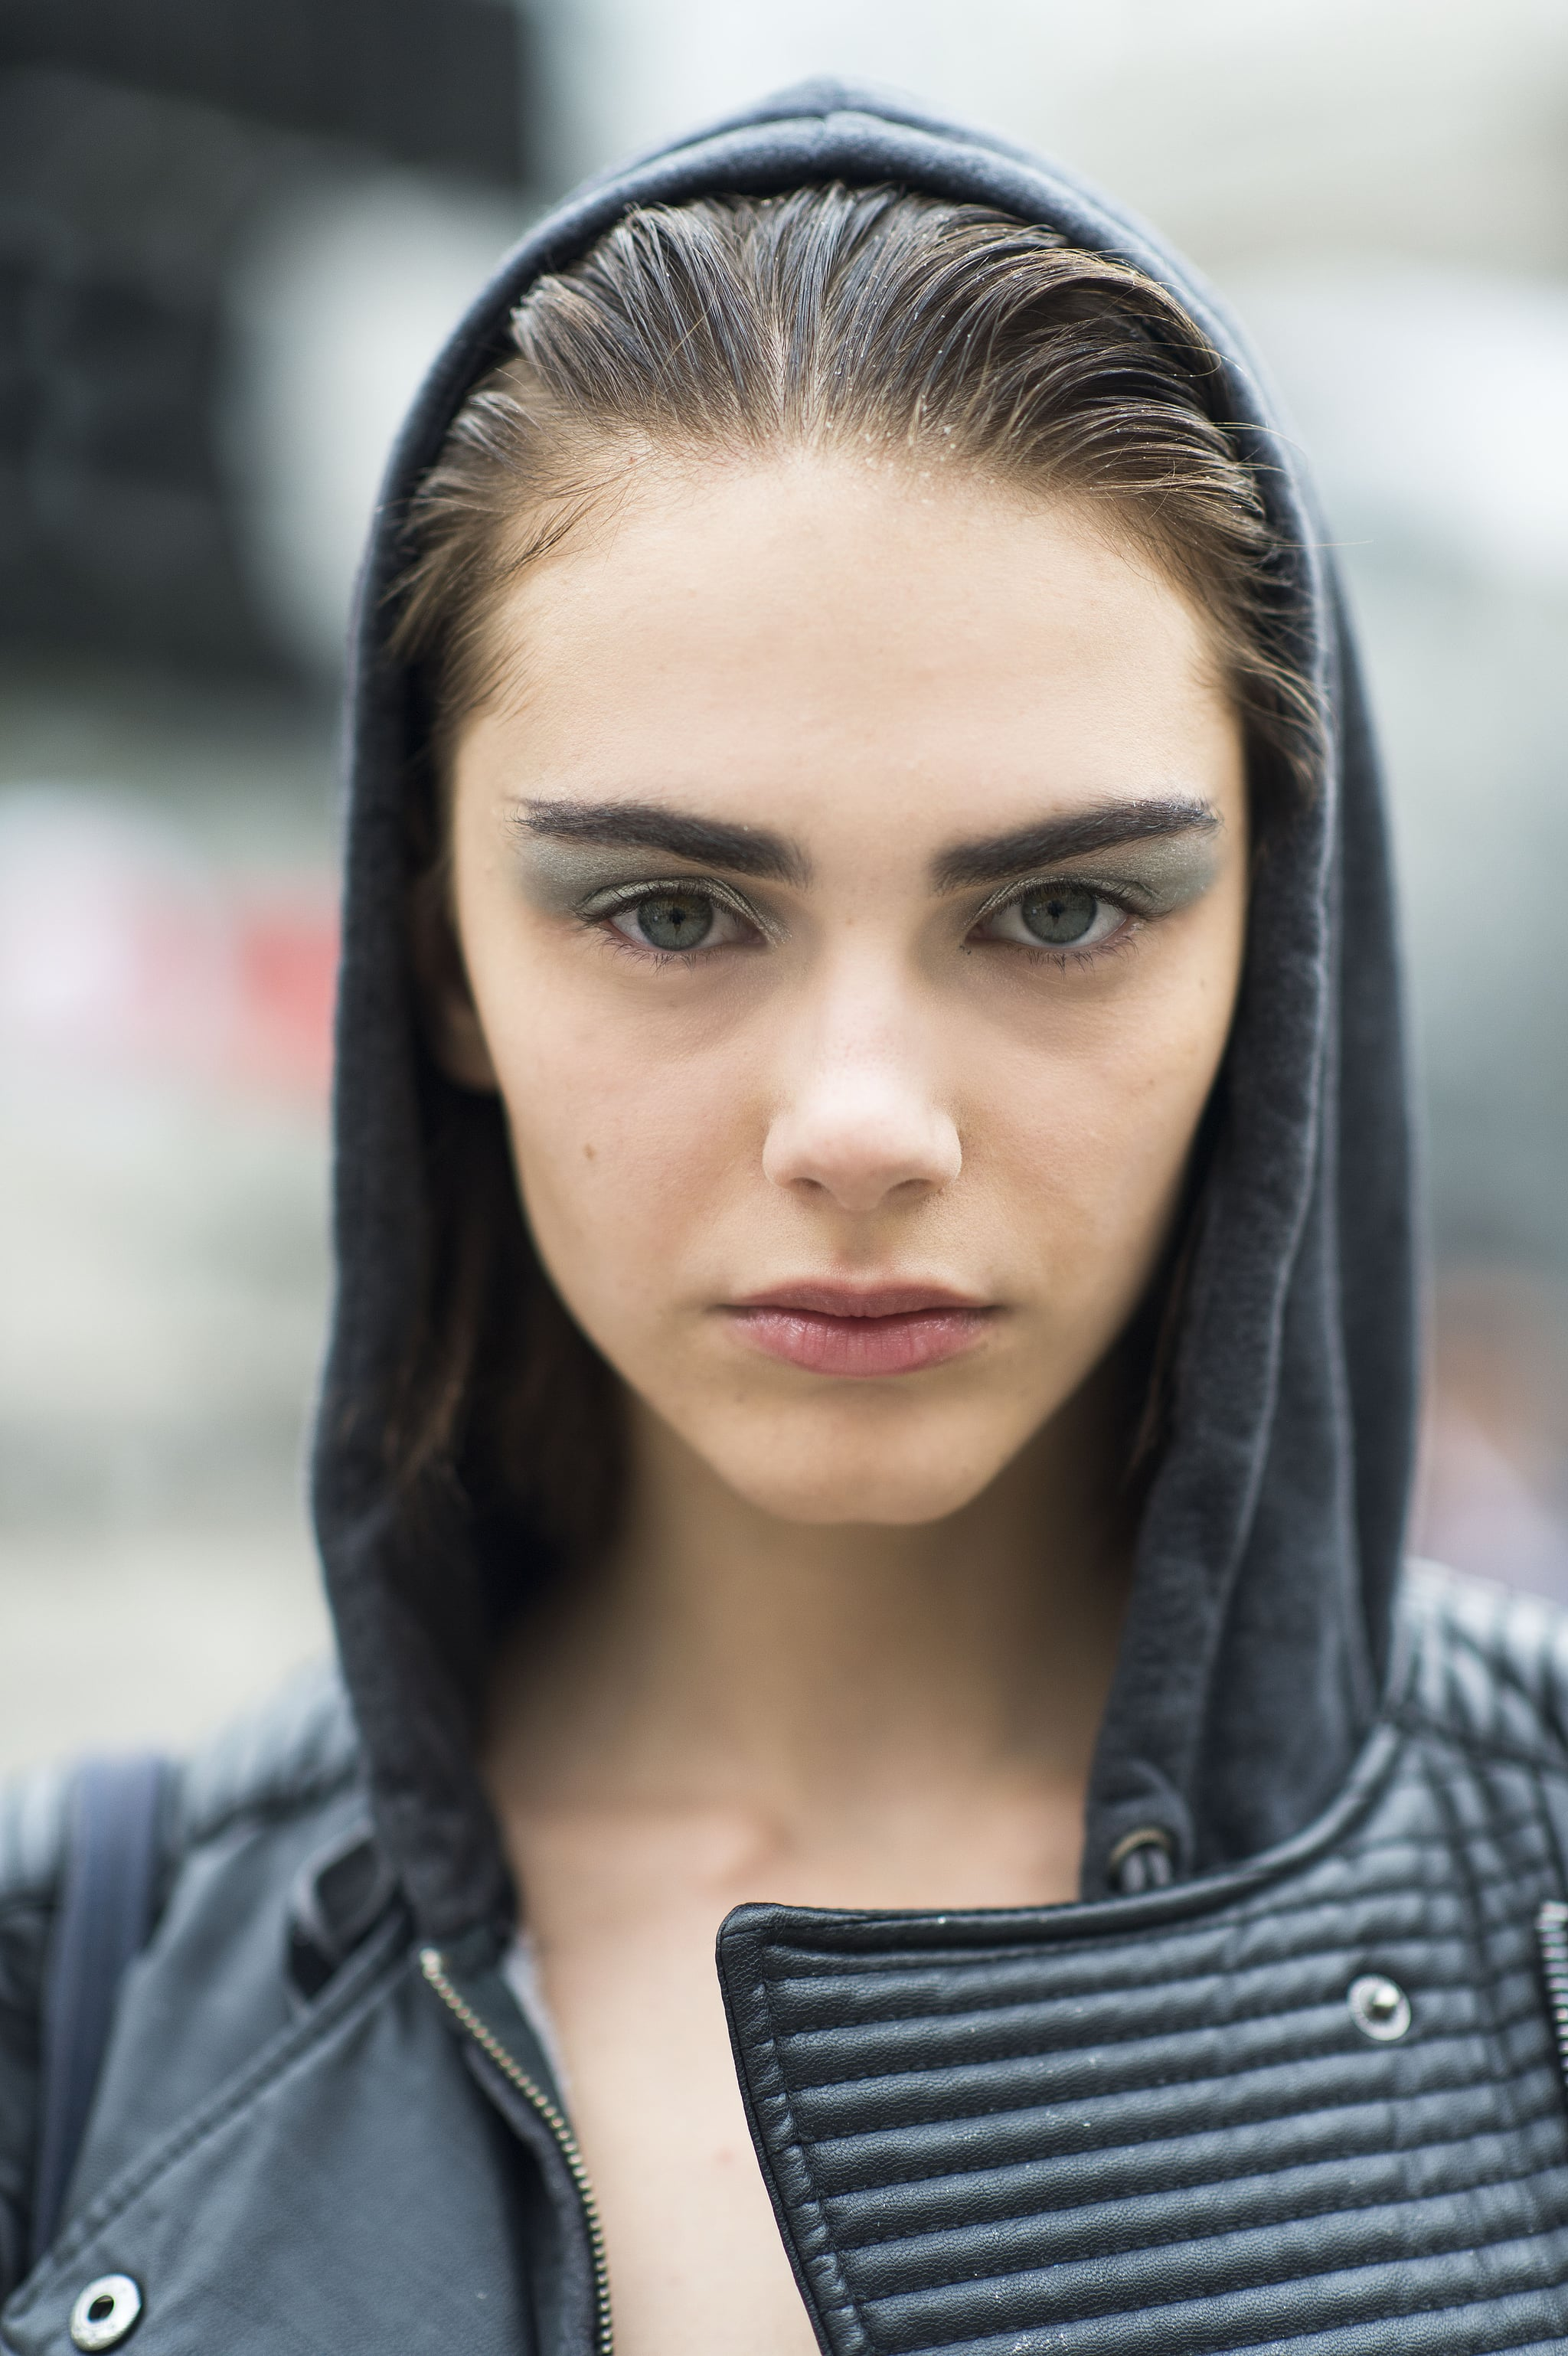 Try a gray shadow for a fashionably edgy take on a classic smoky eye. Source: Le 21ème | Adam Katz Sinding